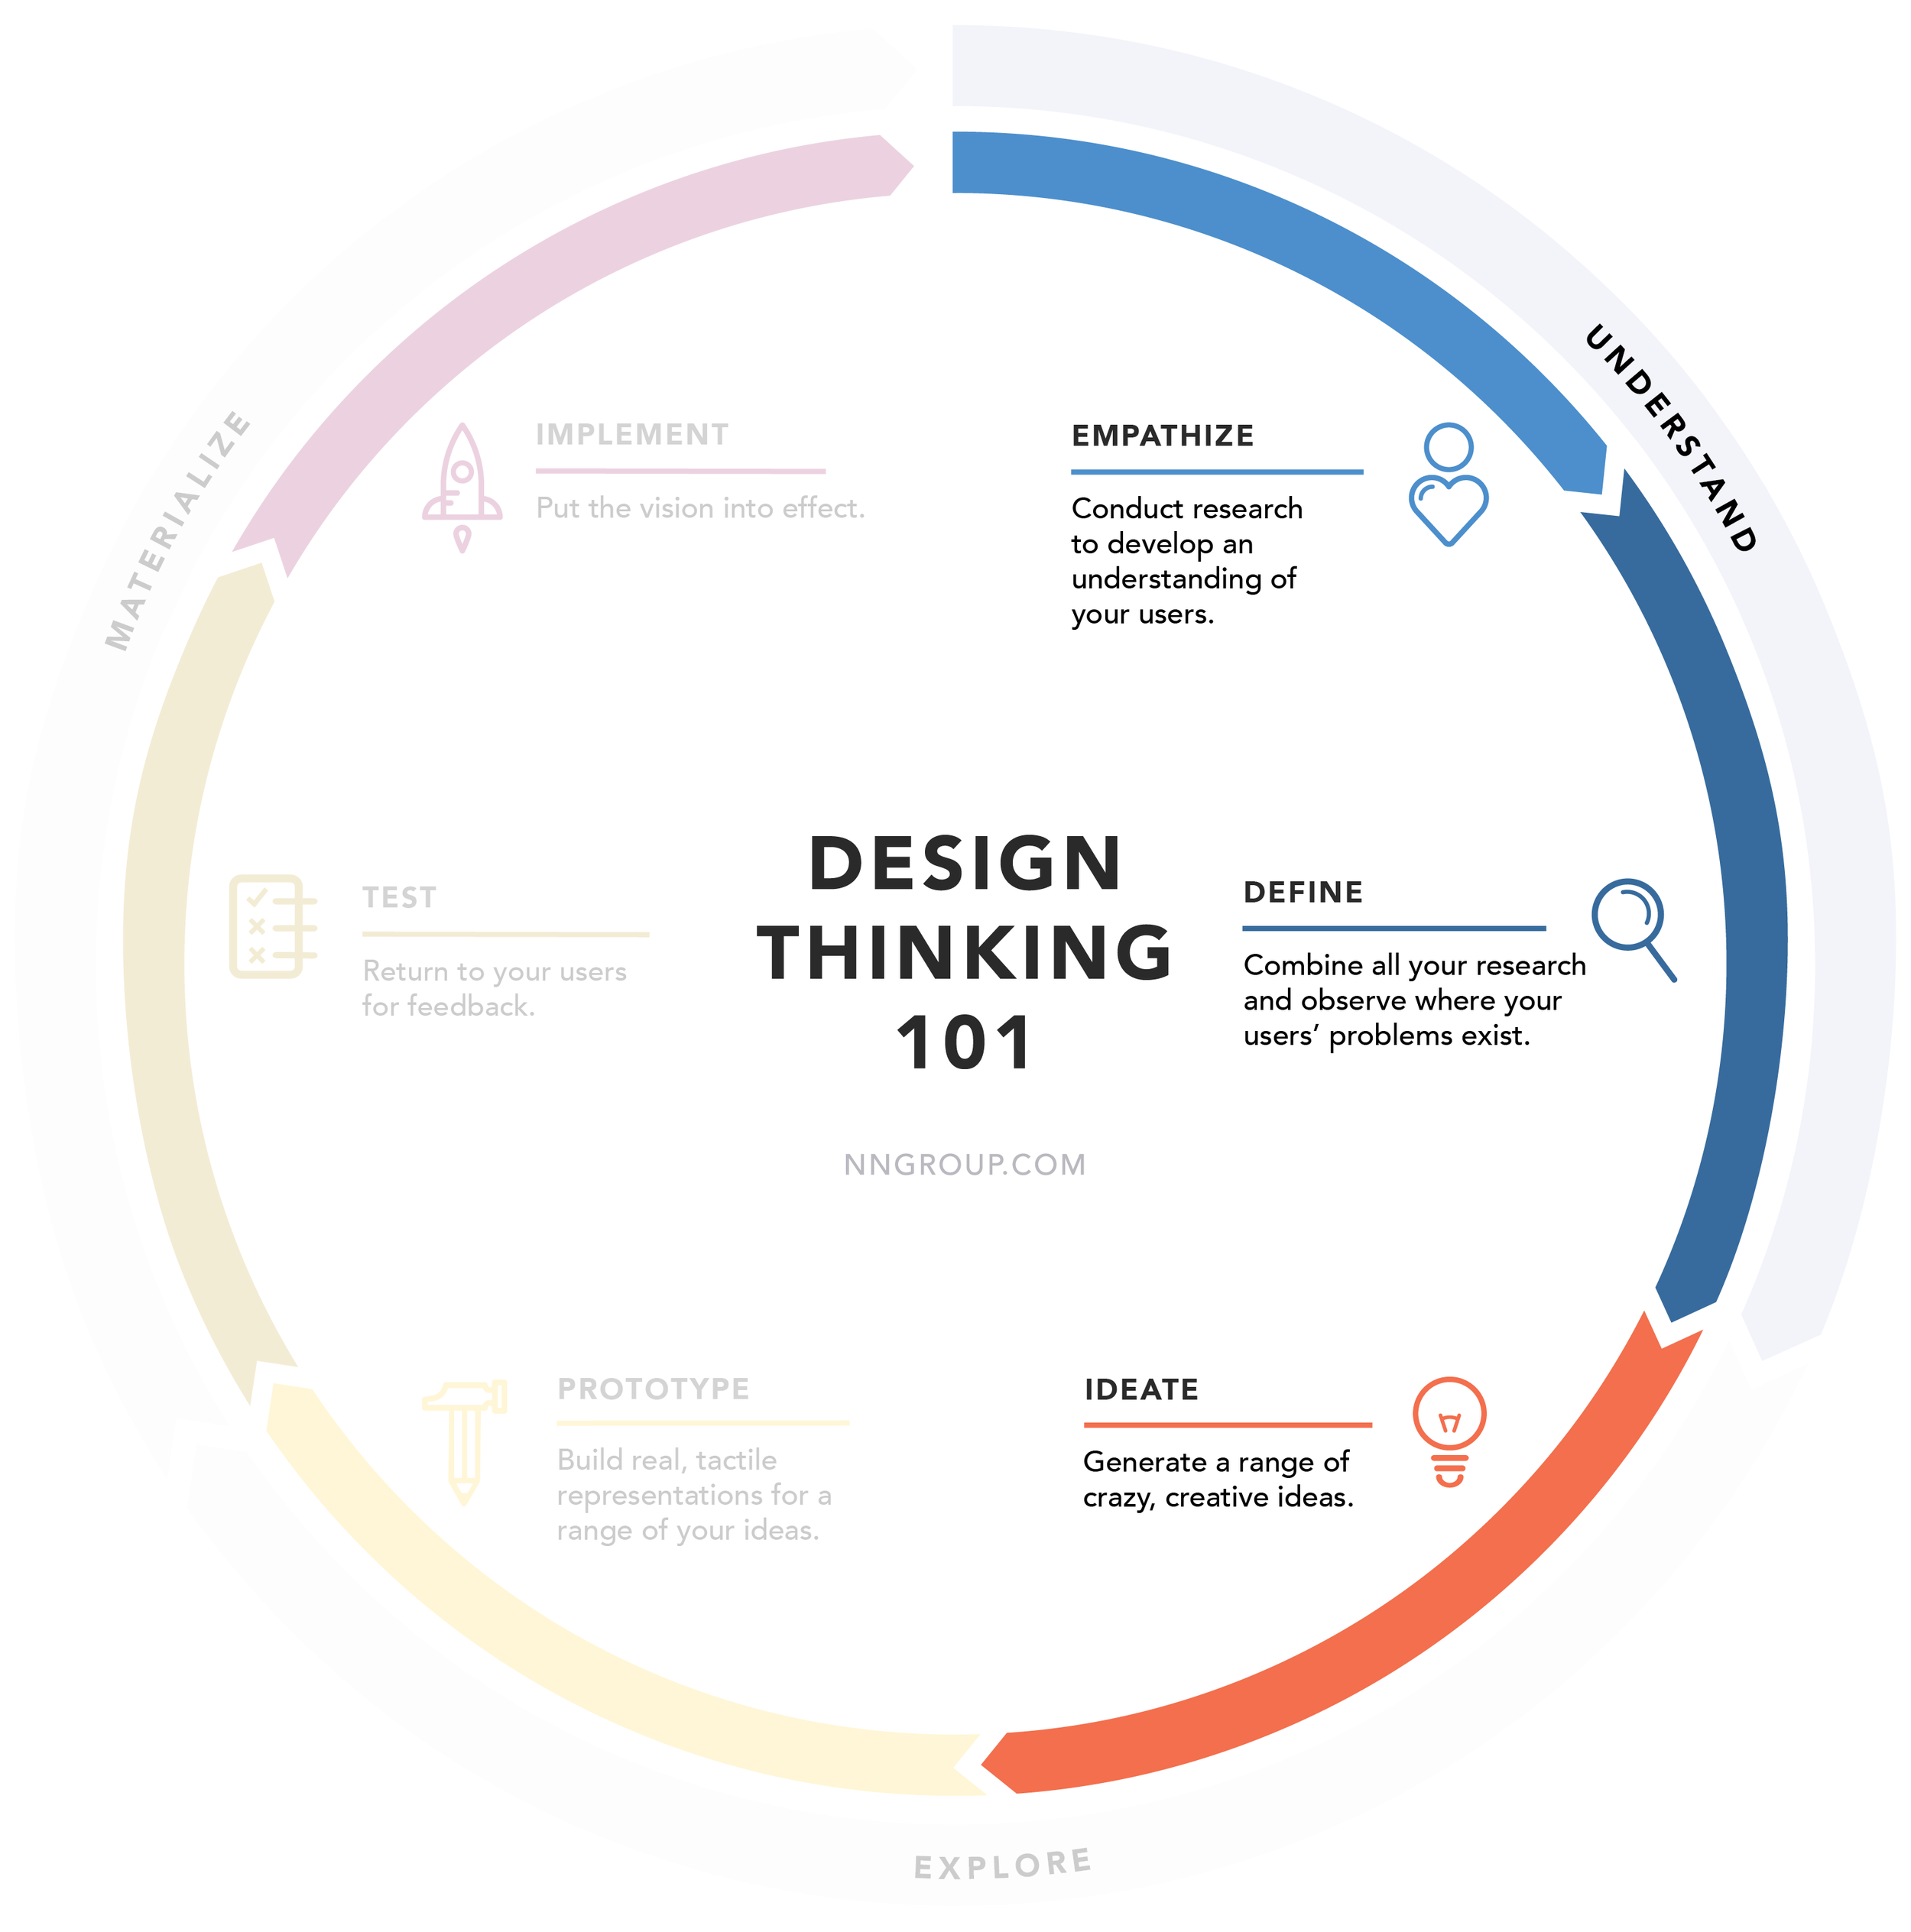 The portion of the design thinking process my class focused on.